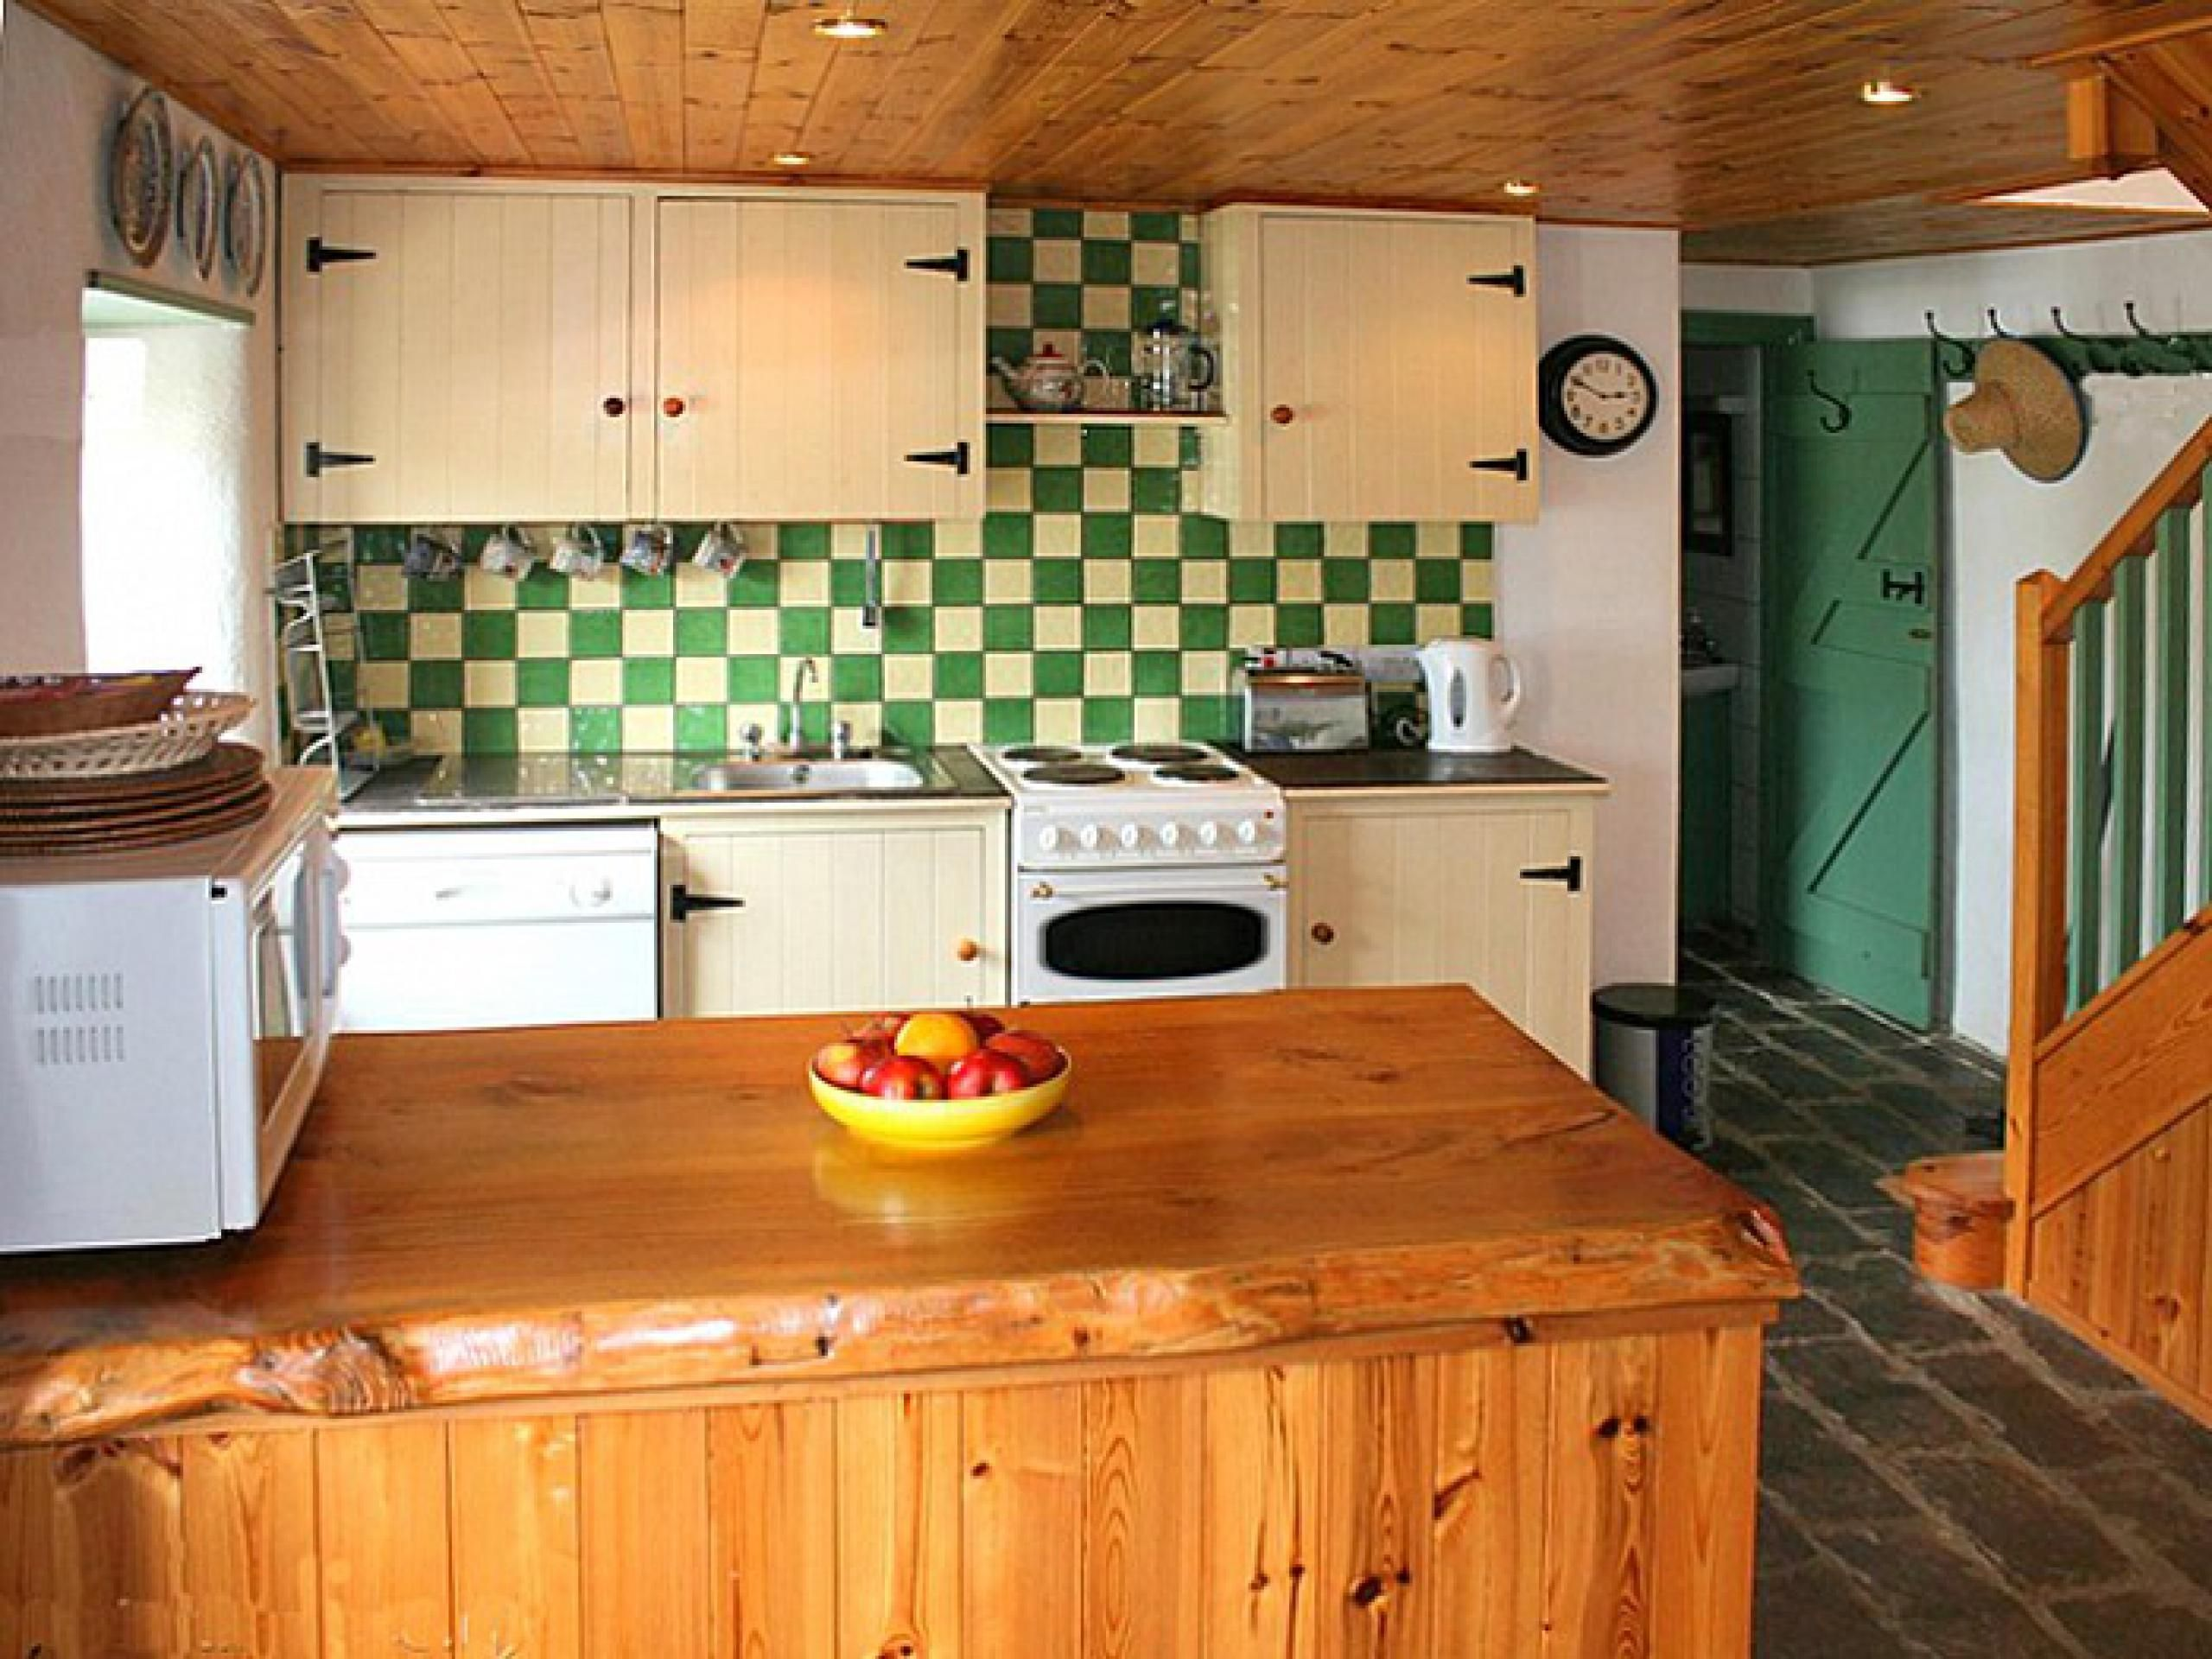 140 Sneem Holiday Cottage In Kerry Shamrock Cottages Home Decor Kitchen Interior